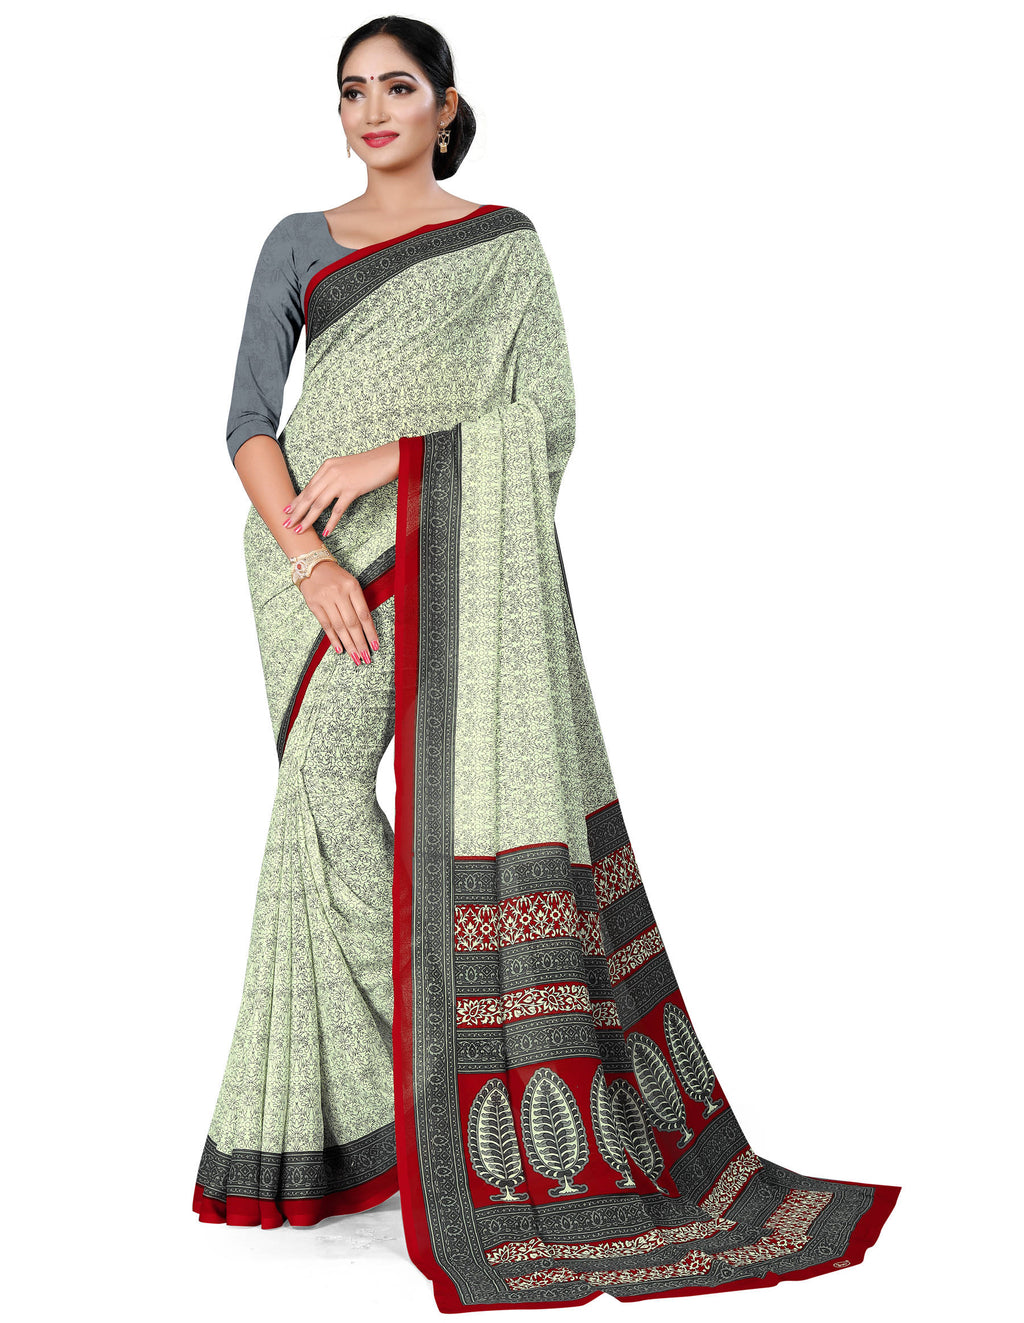 White & Grey Color Crepe Chiffon Daily Wear Printed Sarees NYF-7788